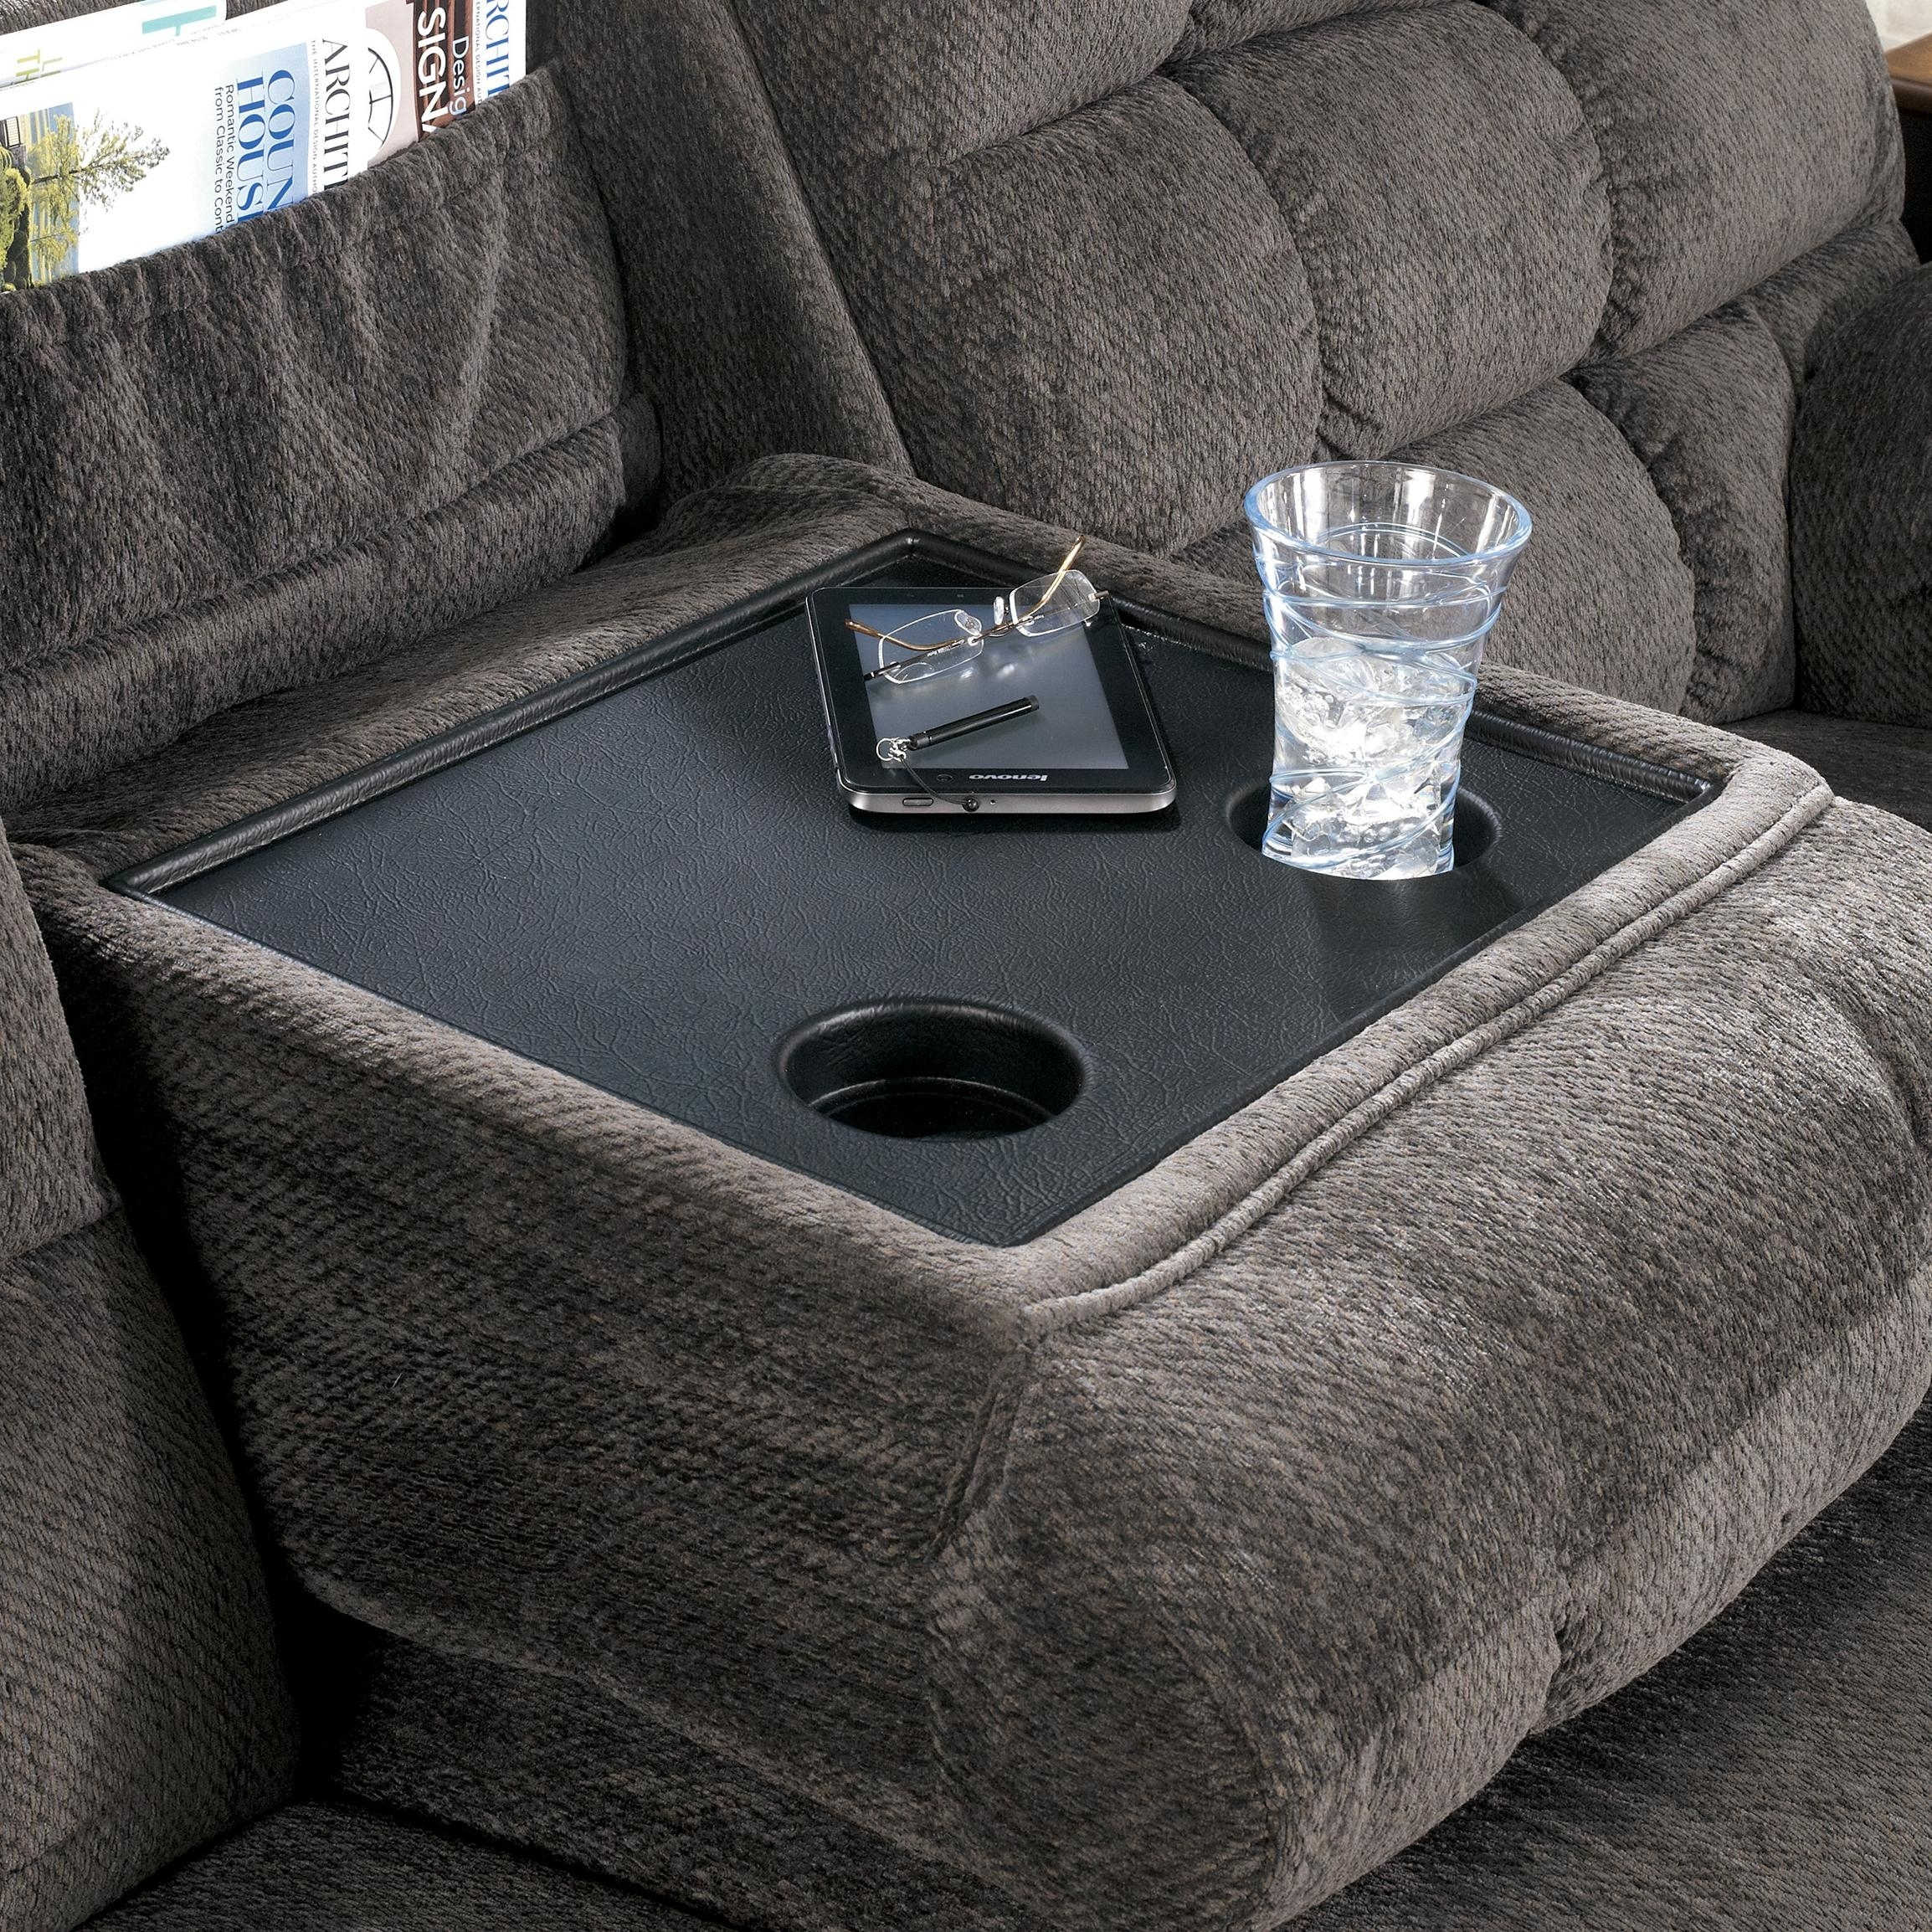 Reclining Sofa With Drop Down Table And Cup Holderssignature With Sofas With Drink Tables (View 7 of 10)